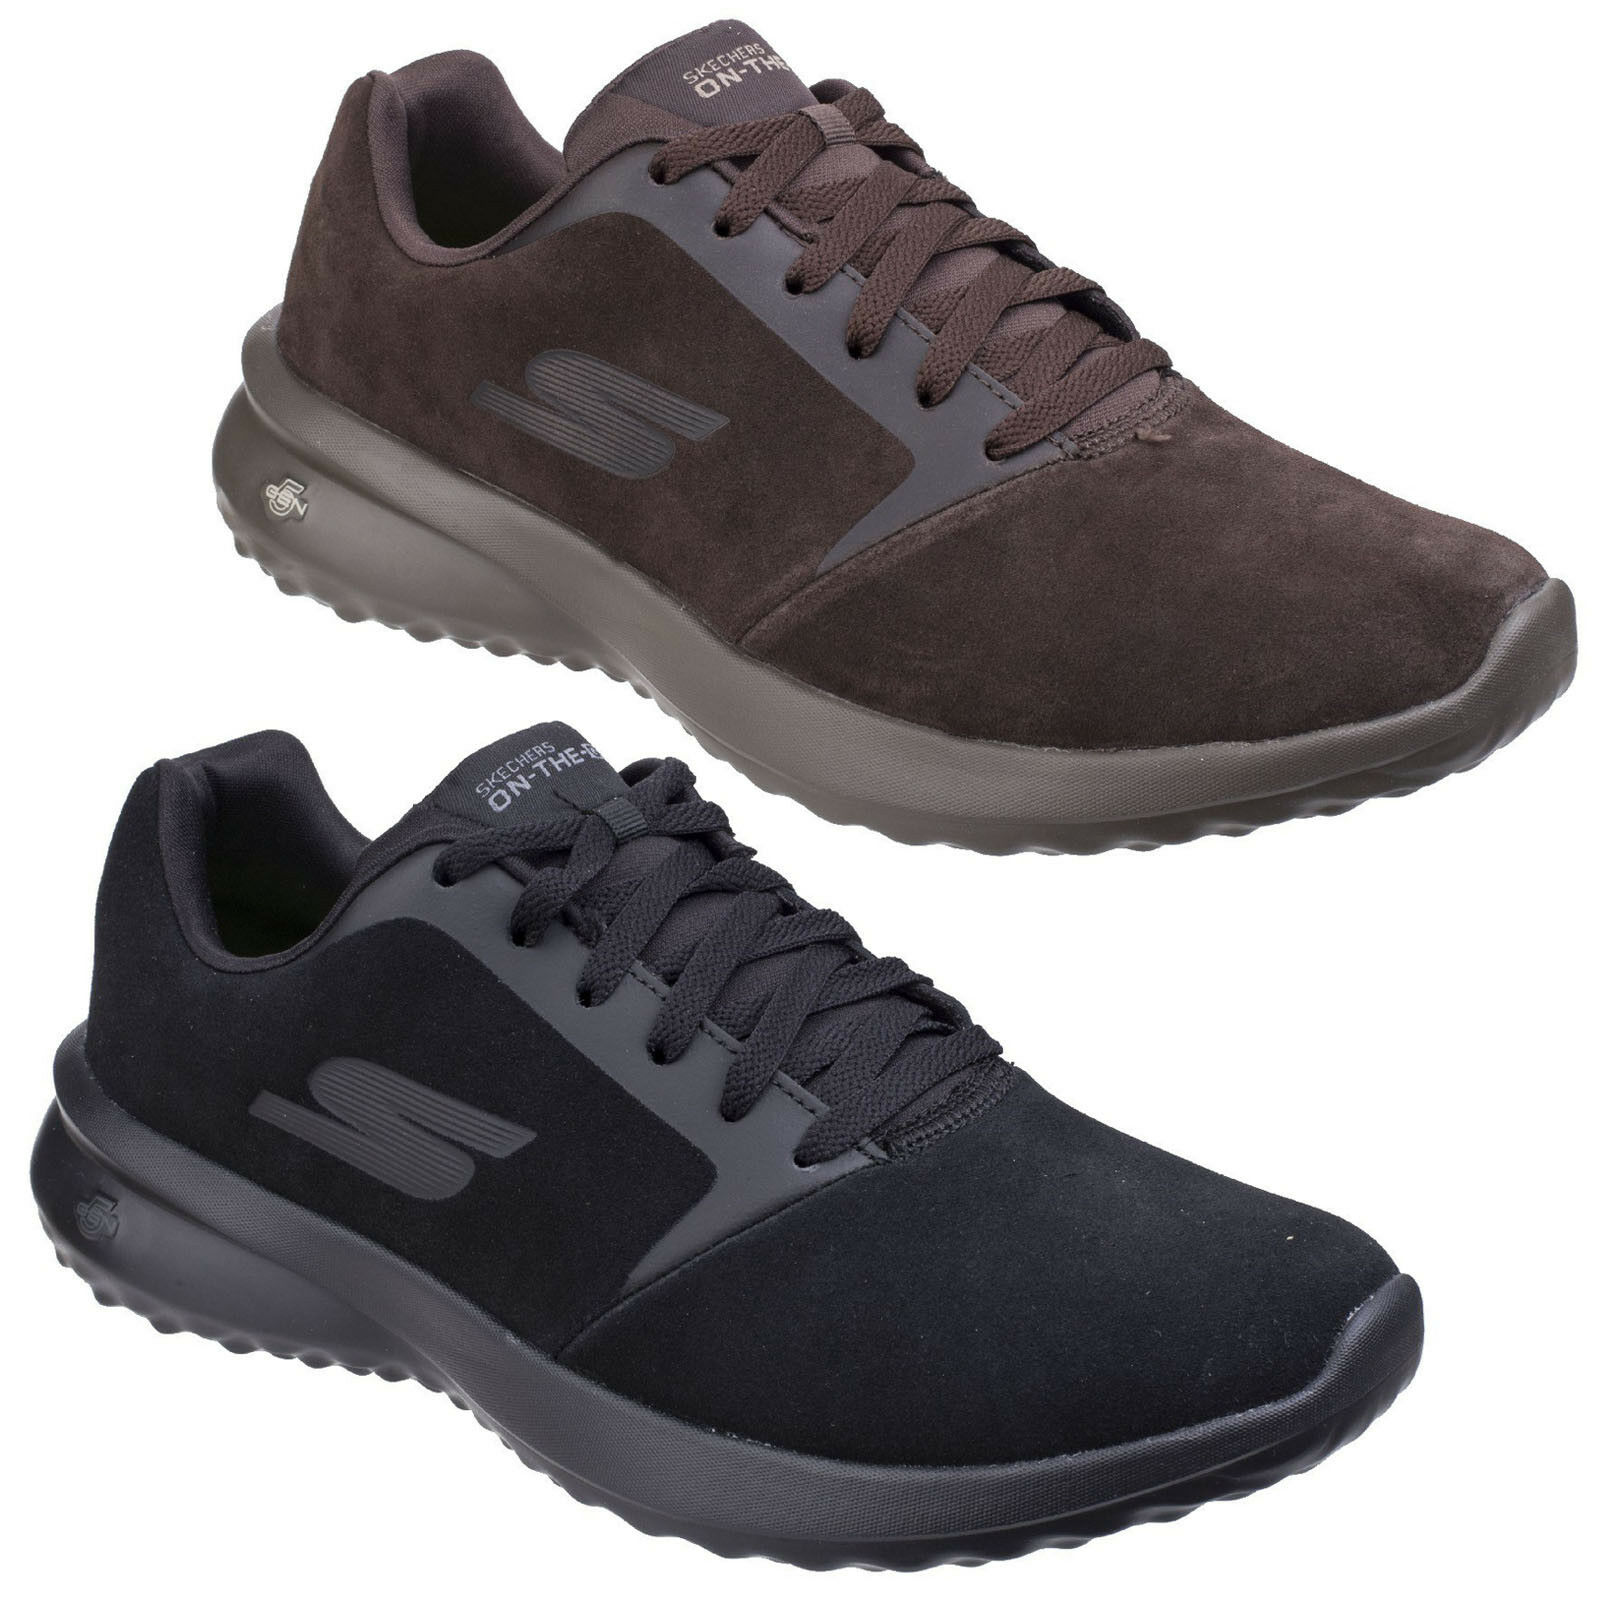 Skechers On The Go City 3.0 Trainers Mens Lace Up Sports Shoes